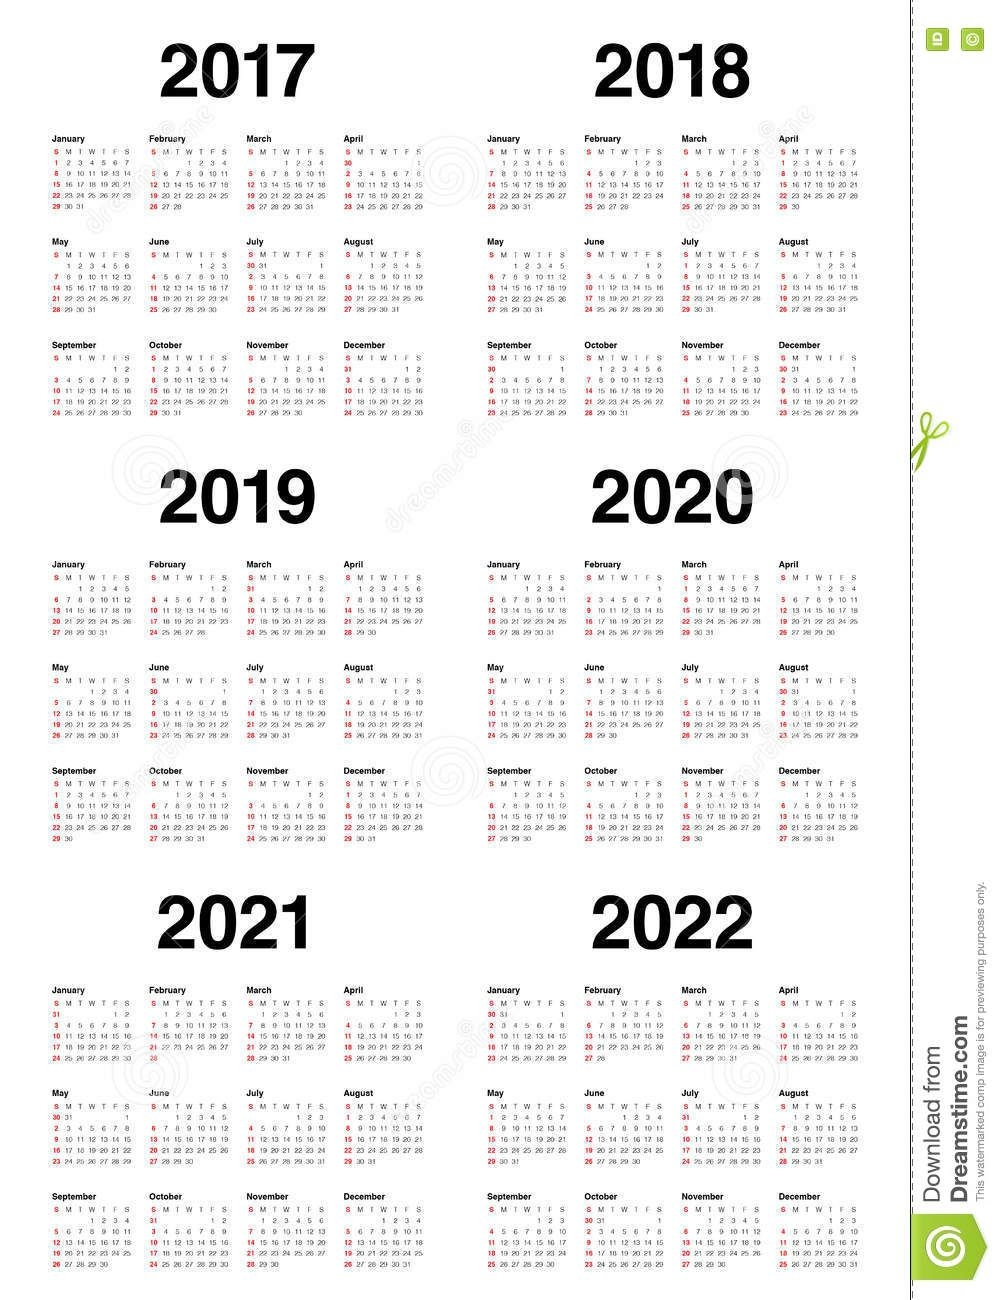 Simple Calendar Template For 2017 To 2022 Stock Vector